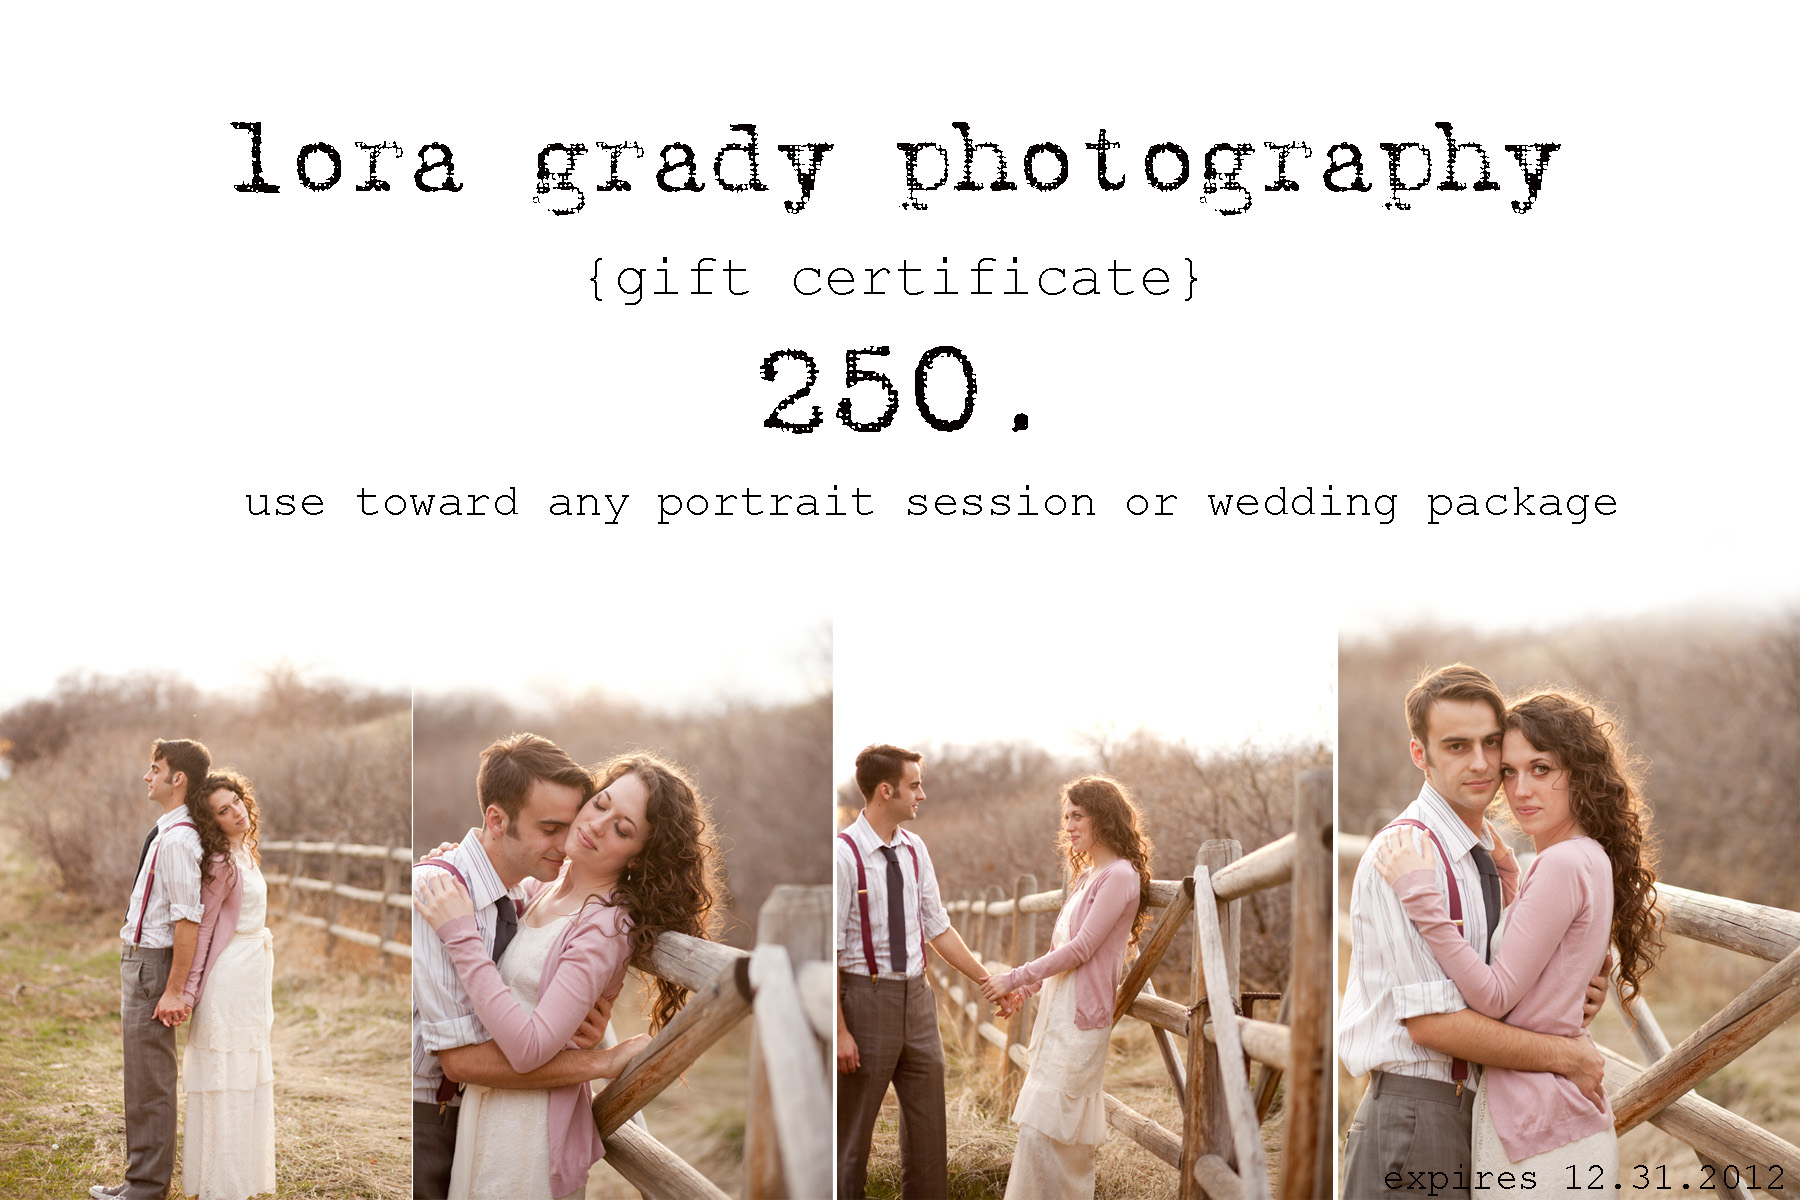 Drumroll please winner of my wedding giveaway lora grady drumroll please winner of my wedding giveaway lora grady photography yadclub Image collections